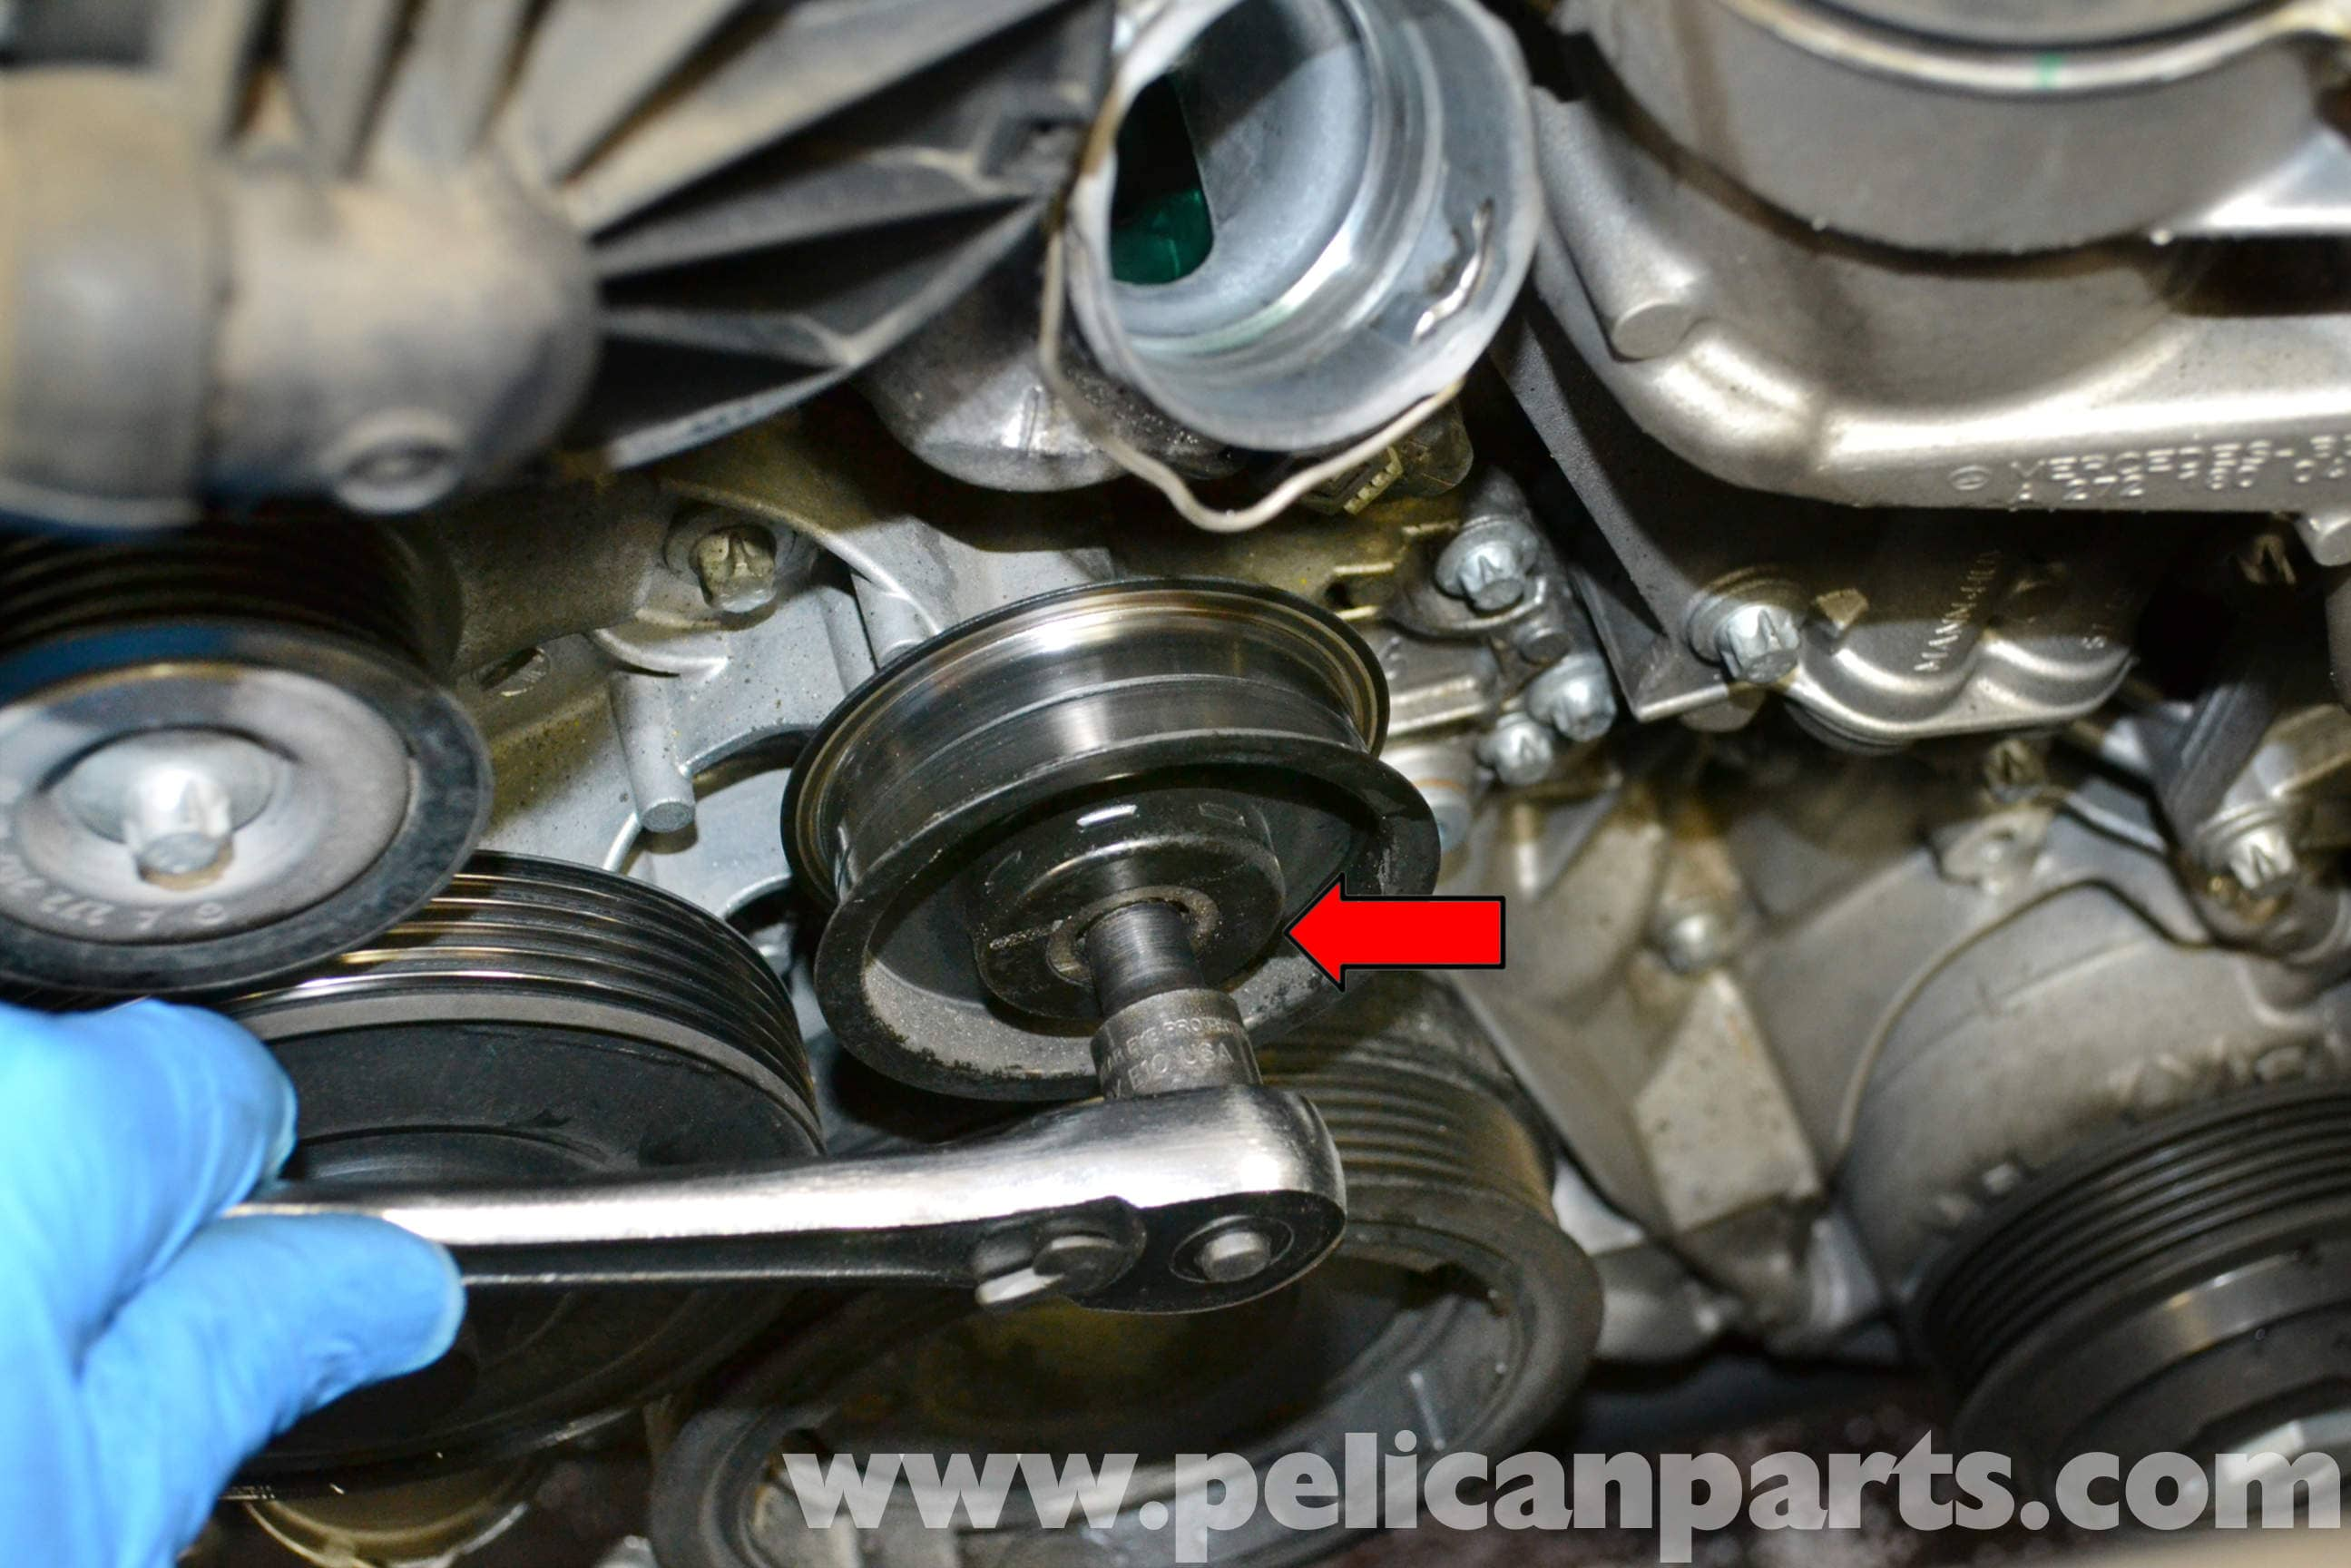 Mercedes-Benz W204 Oil Housing and Seal Replacement - (2008